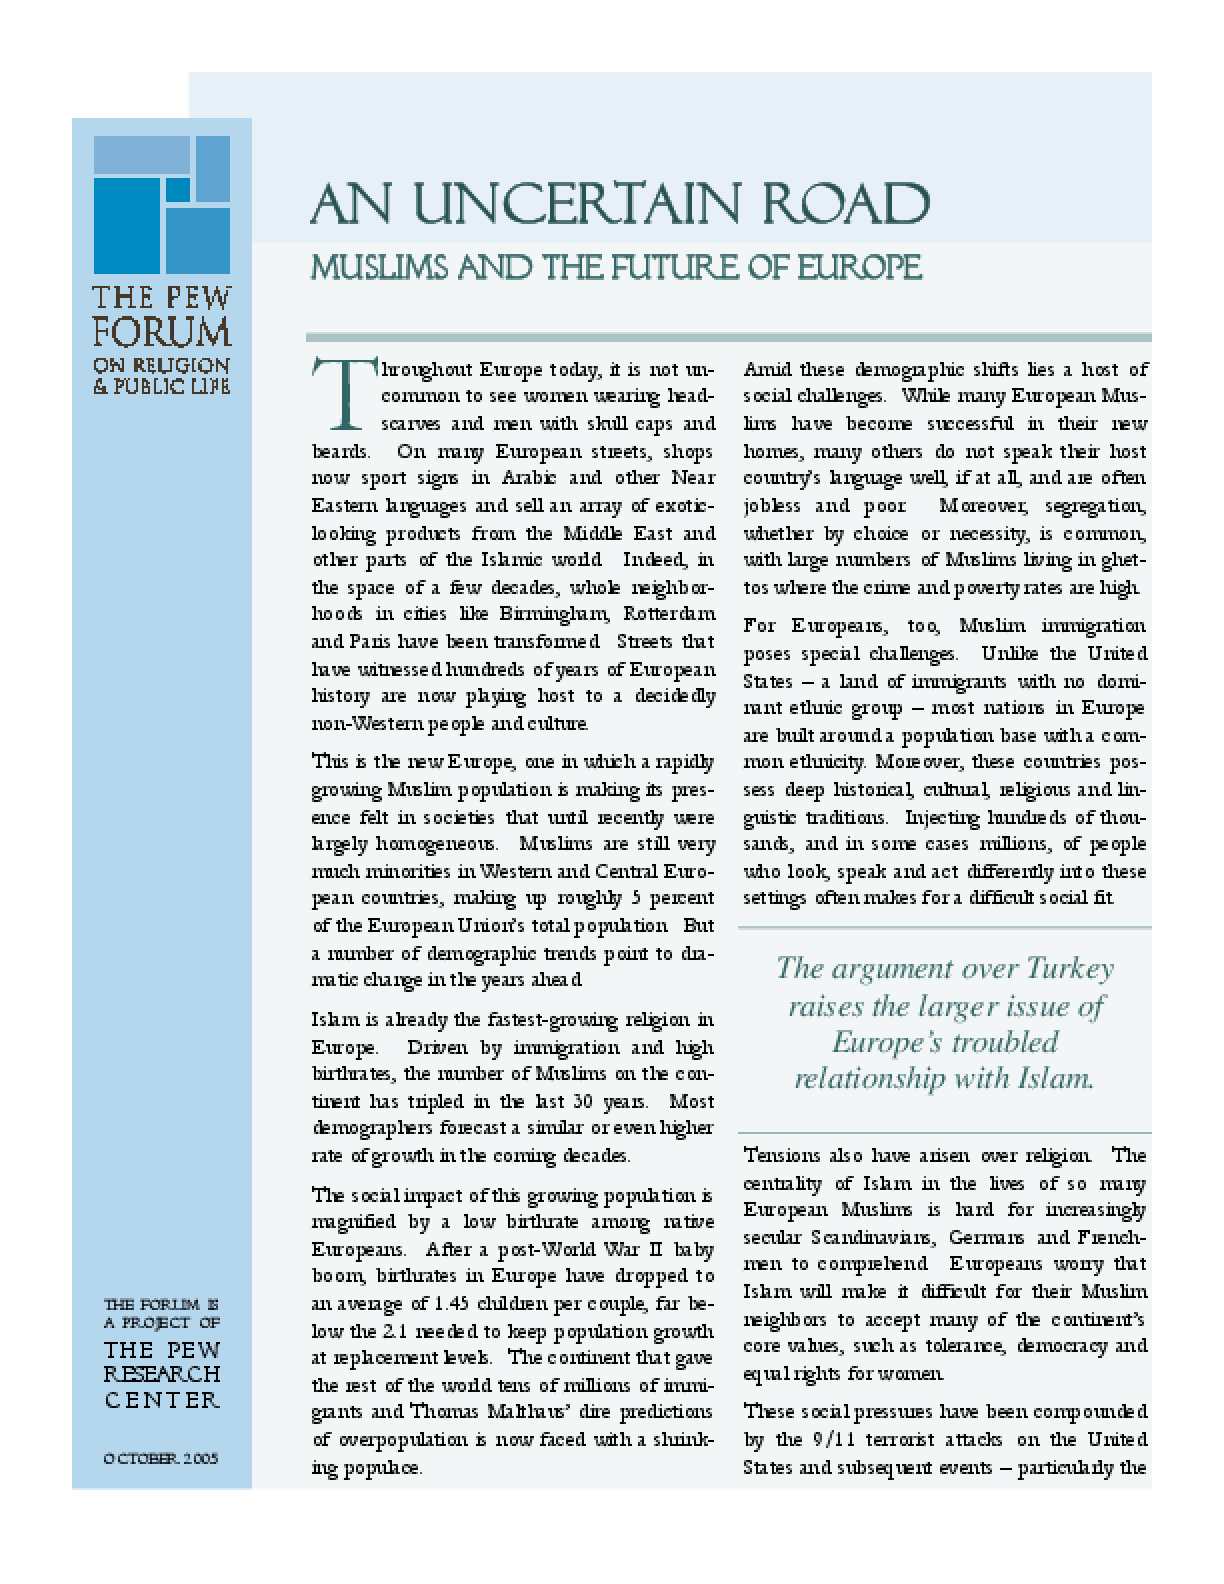 An Uncertain Road: Muslims and the Future of Europe